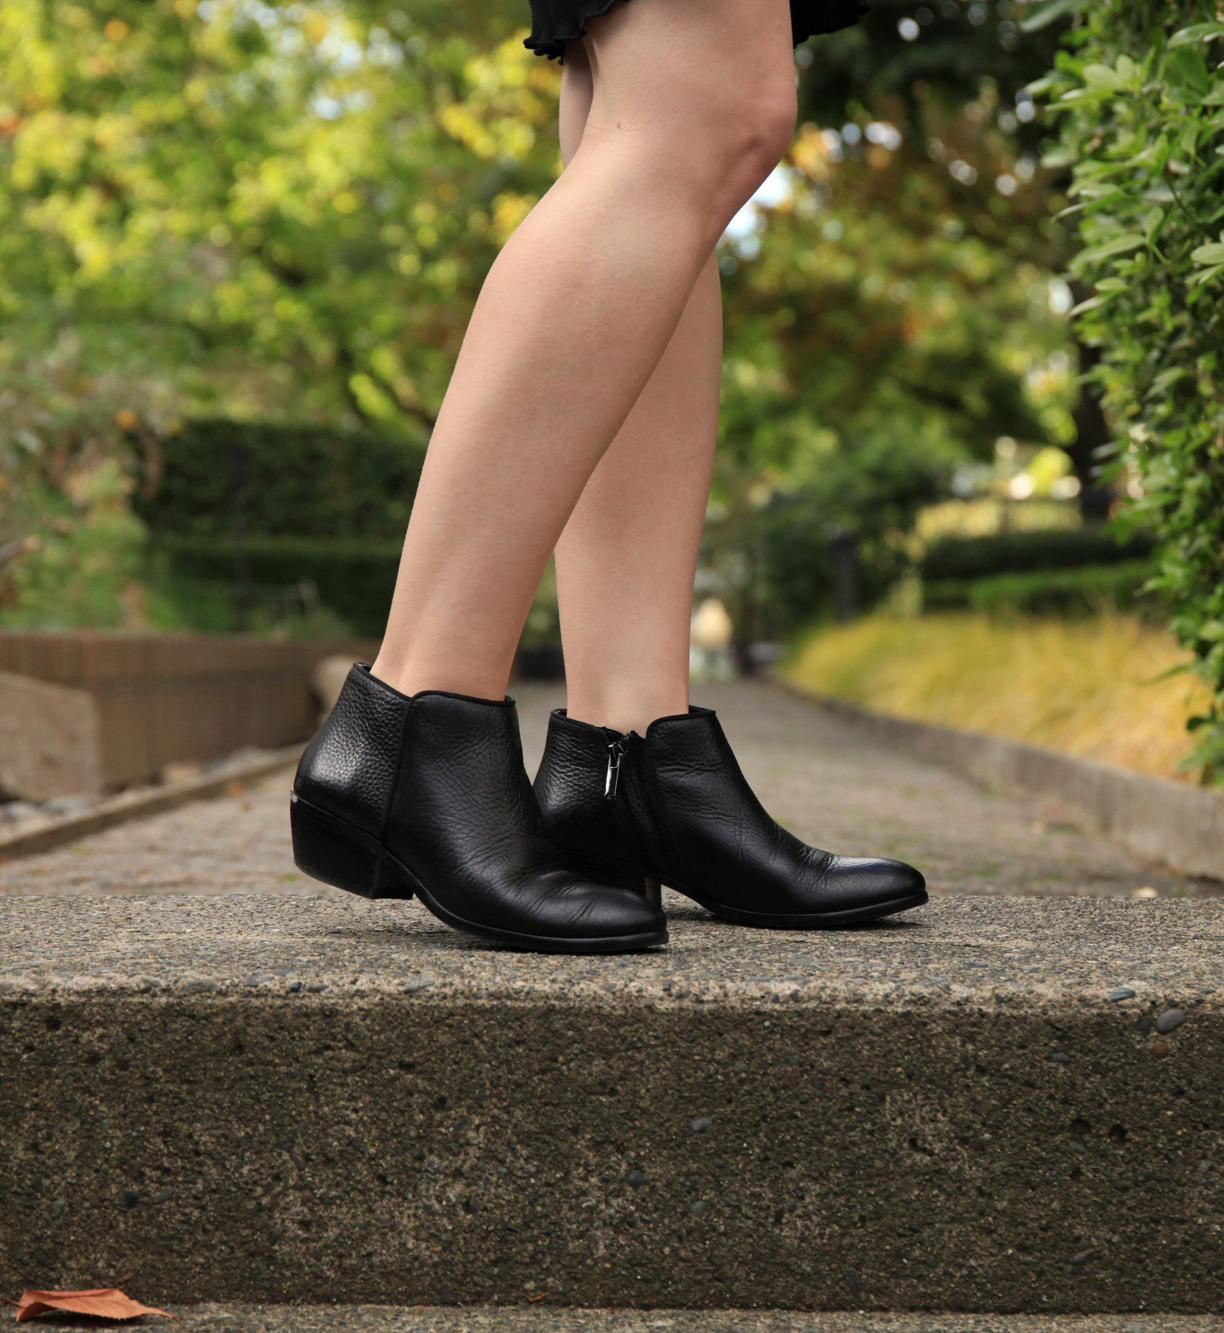 Small Size Neutral Booties for fall | a roundup of tan and black fall boots available in small sizes | fall boots for petite feet | Fox Petite women's fashion blog | #fallfashion #booties #ankleboots #petitefashion